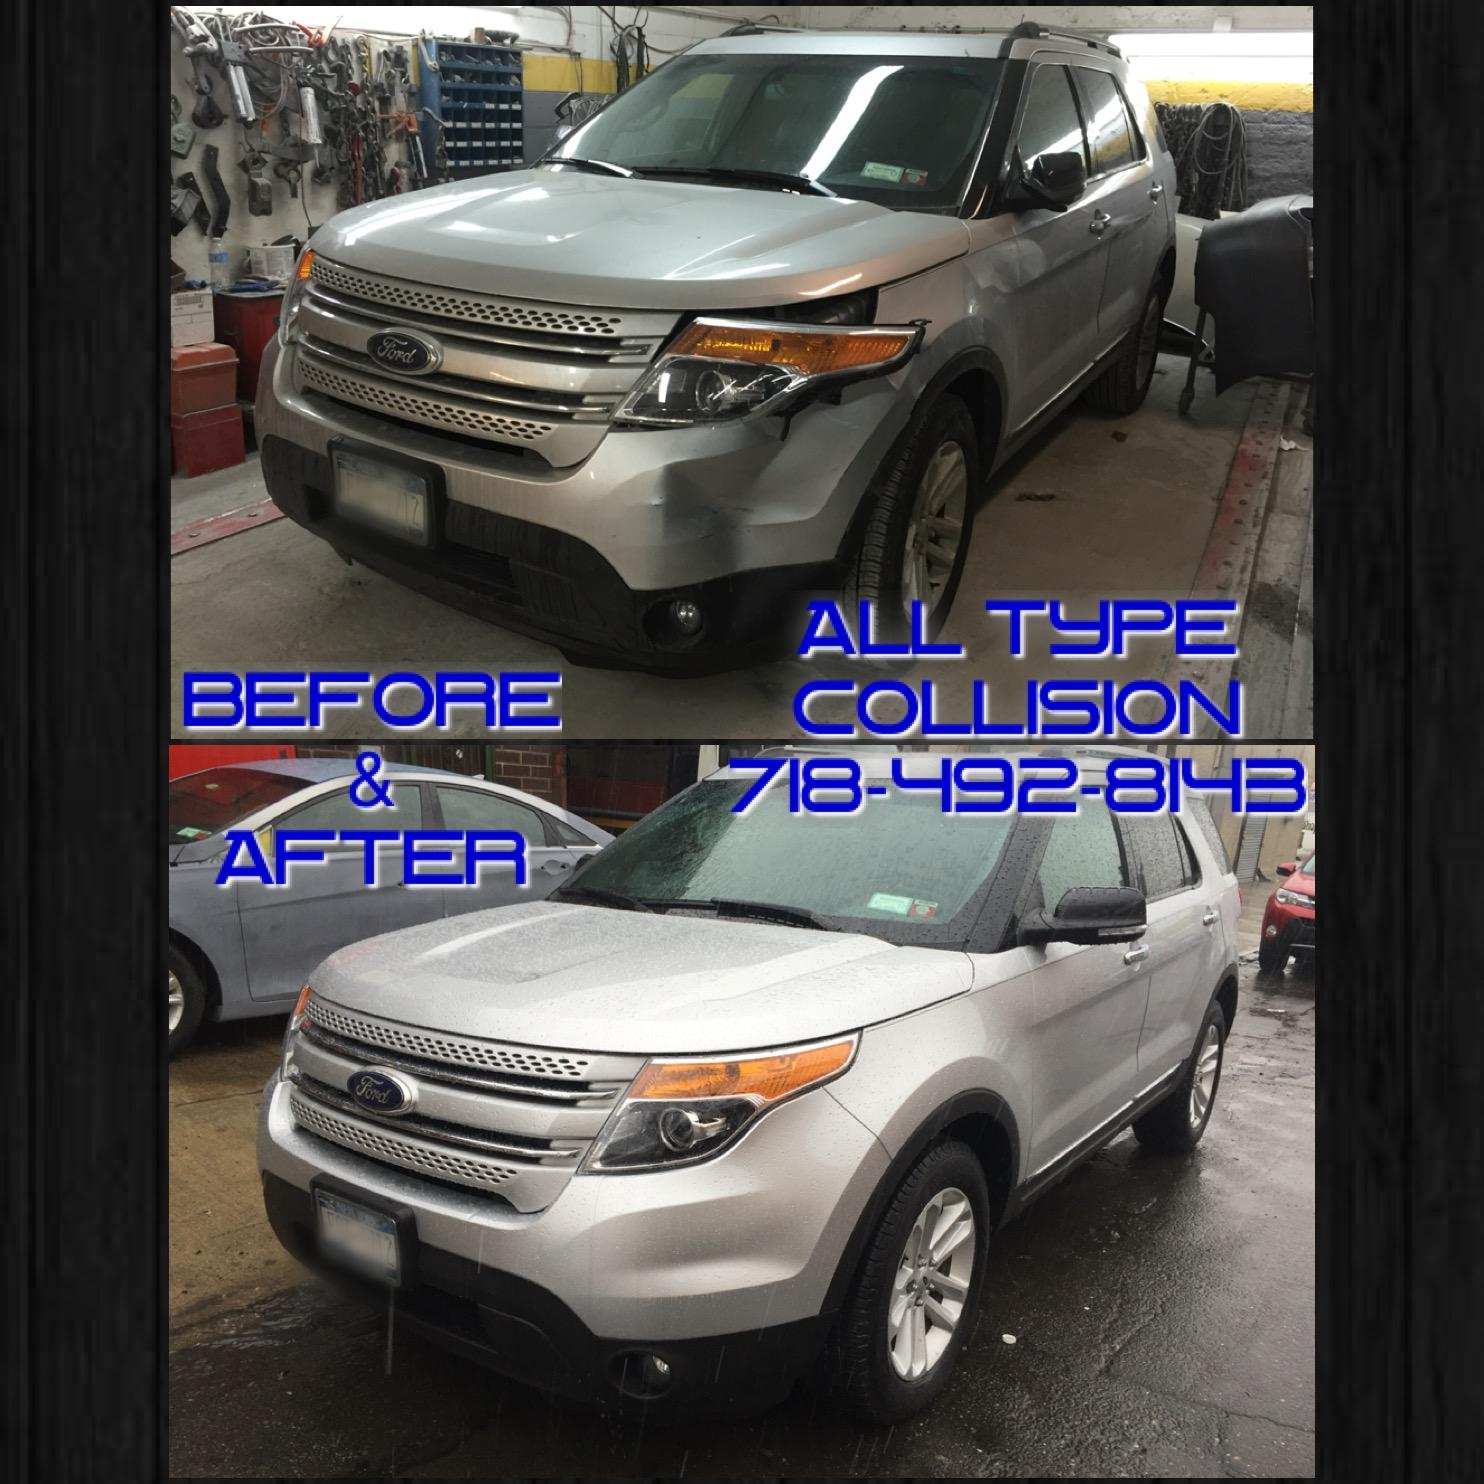 All type collision repairs inc in brooklyn ny 11220 for Motor vehicle in brooklyn